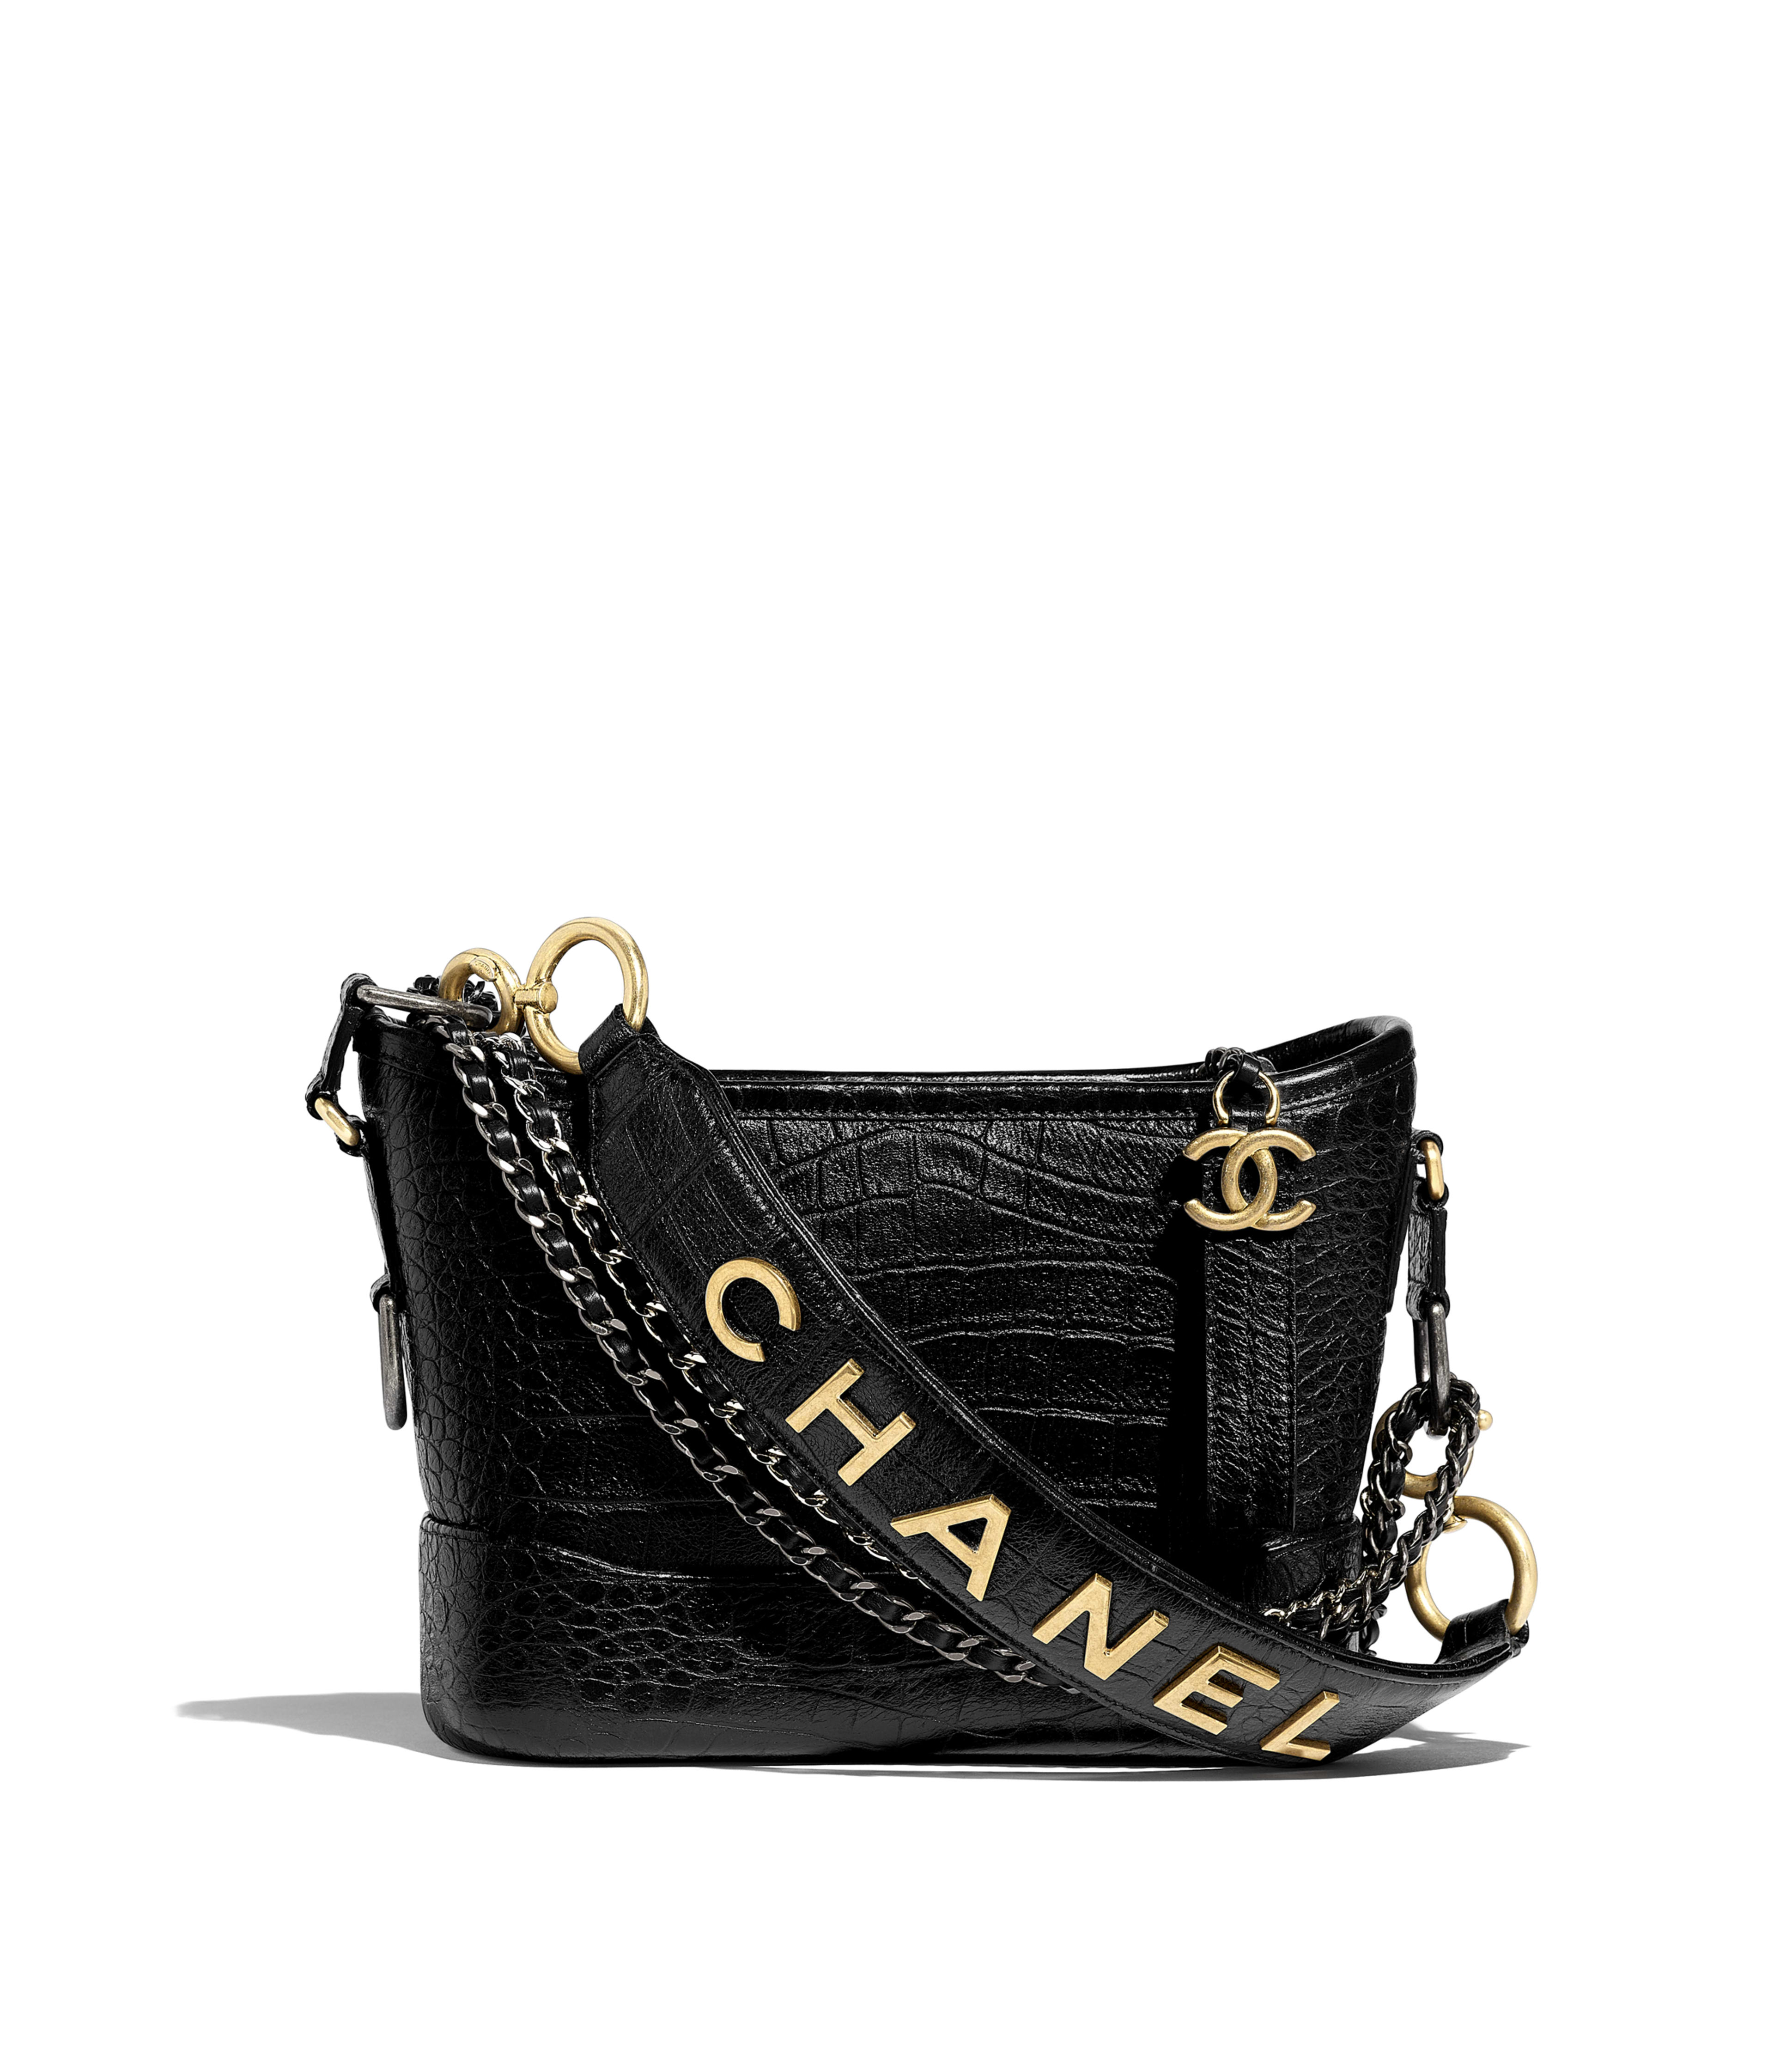 d3da637dbc947 Hobo Bags - Handbags | CHANEL